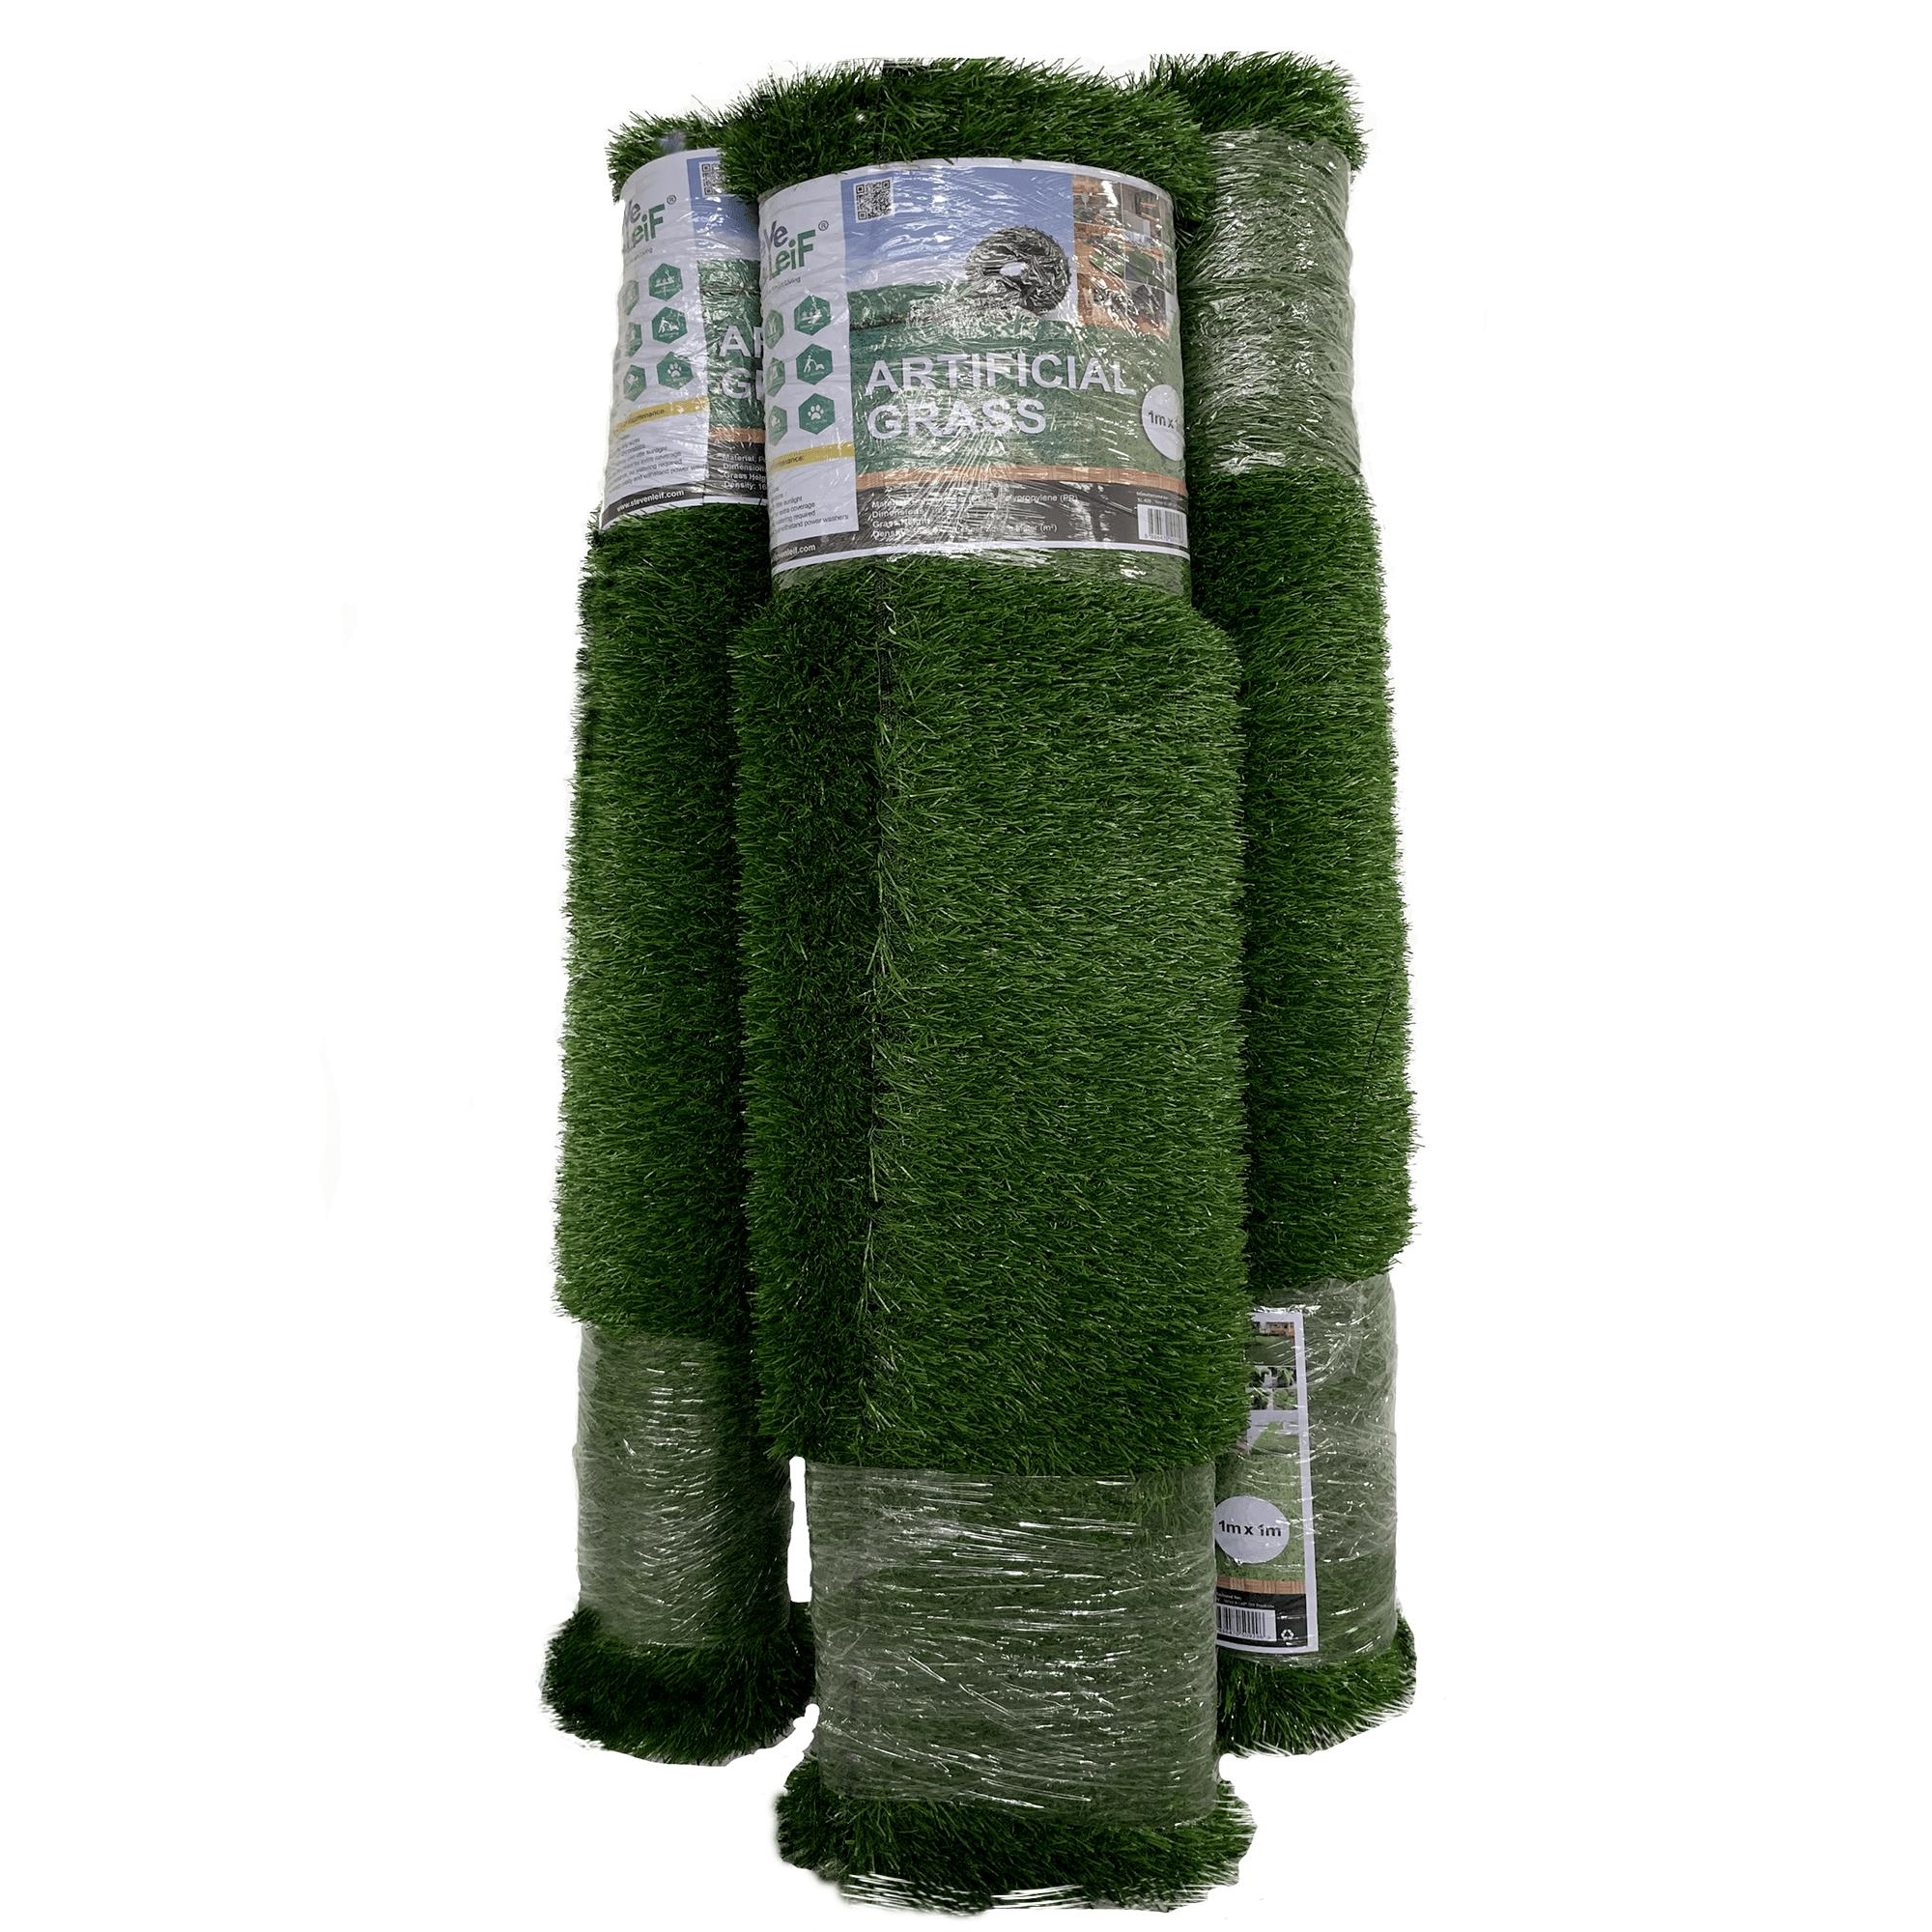 Steve & Leif Indoor / Outdoor Green Artificial Grass Turf (1m x 1m)